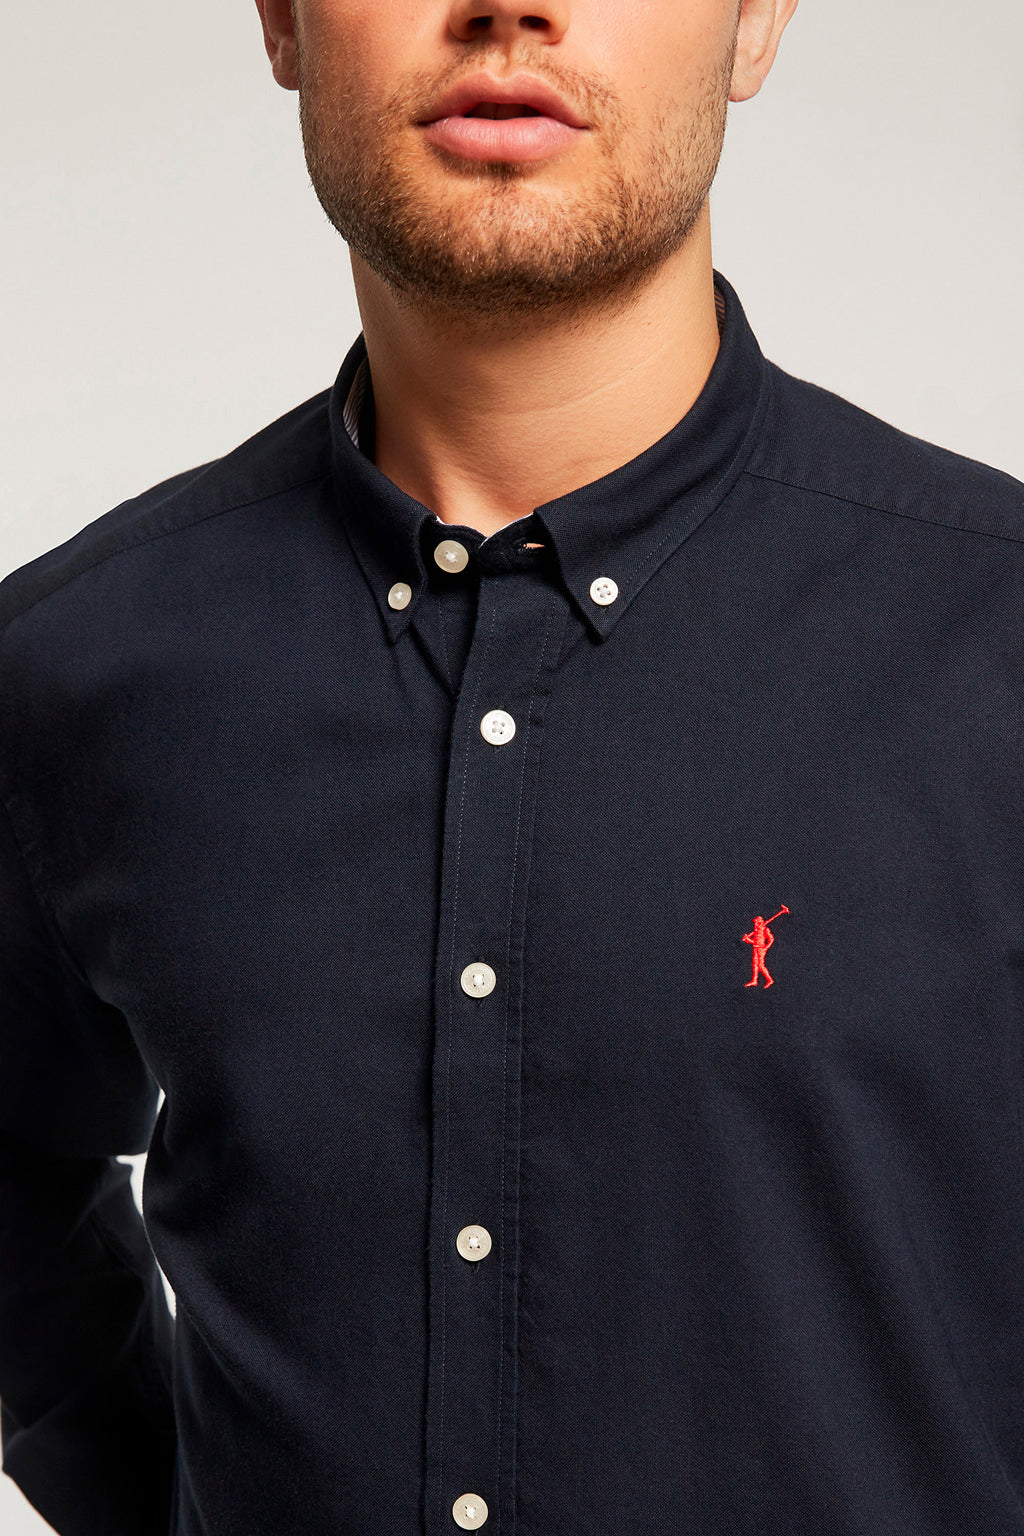 Navy blue Oxford shirt with embroidered logo